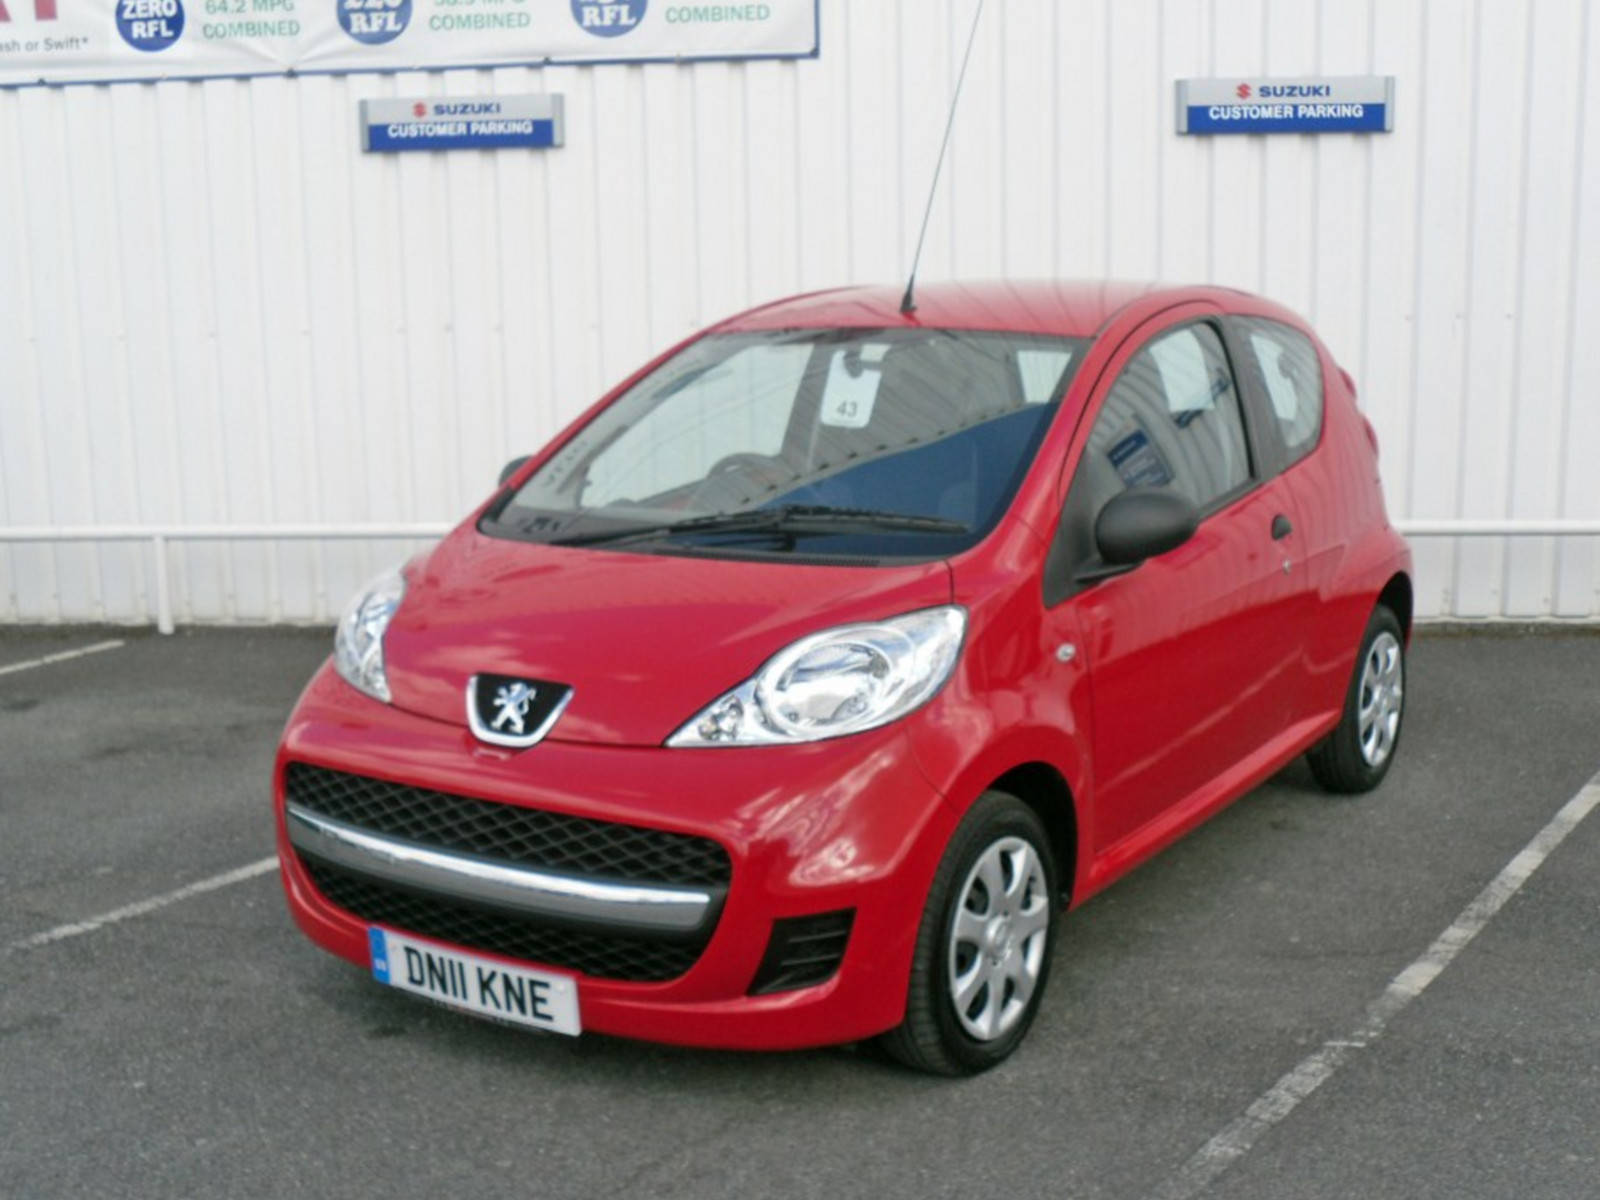 2011 Peugeot 107 Urban Lite 3 Door